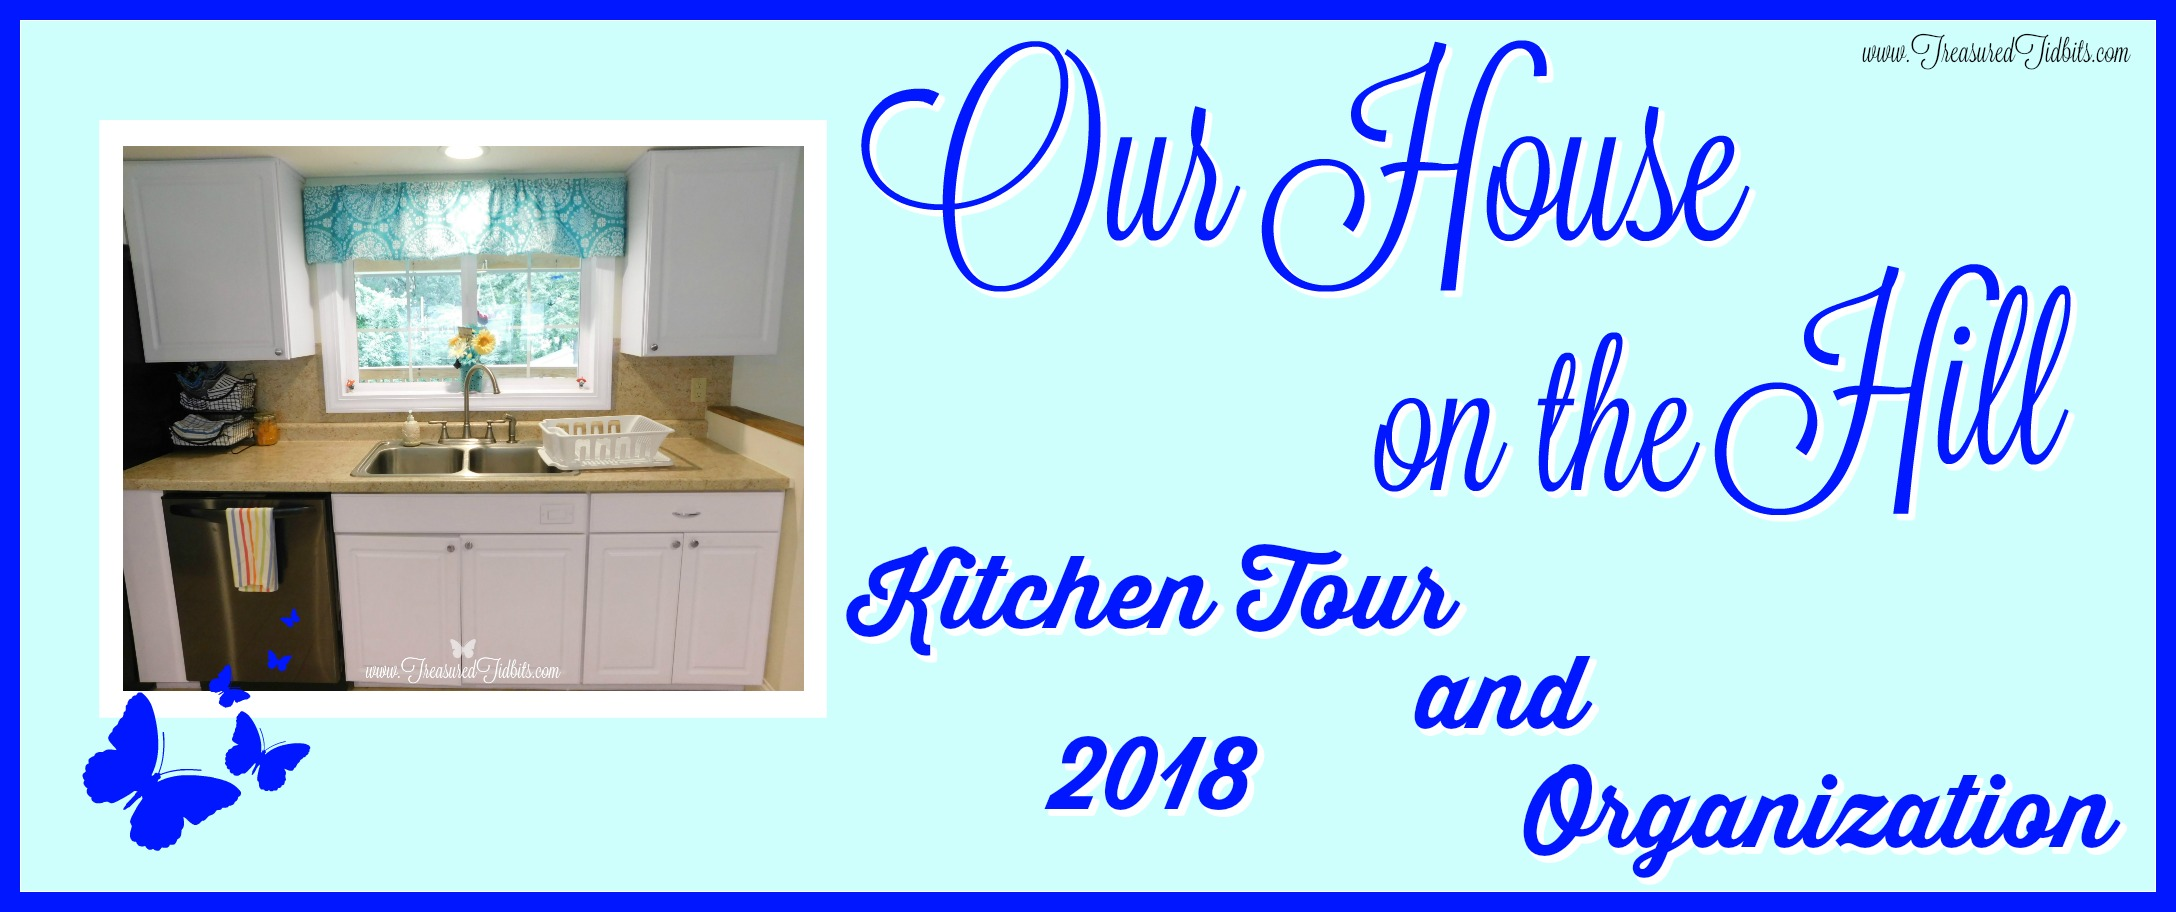 Kitchen TOur 2018 Our House on the Hill